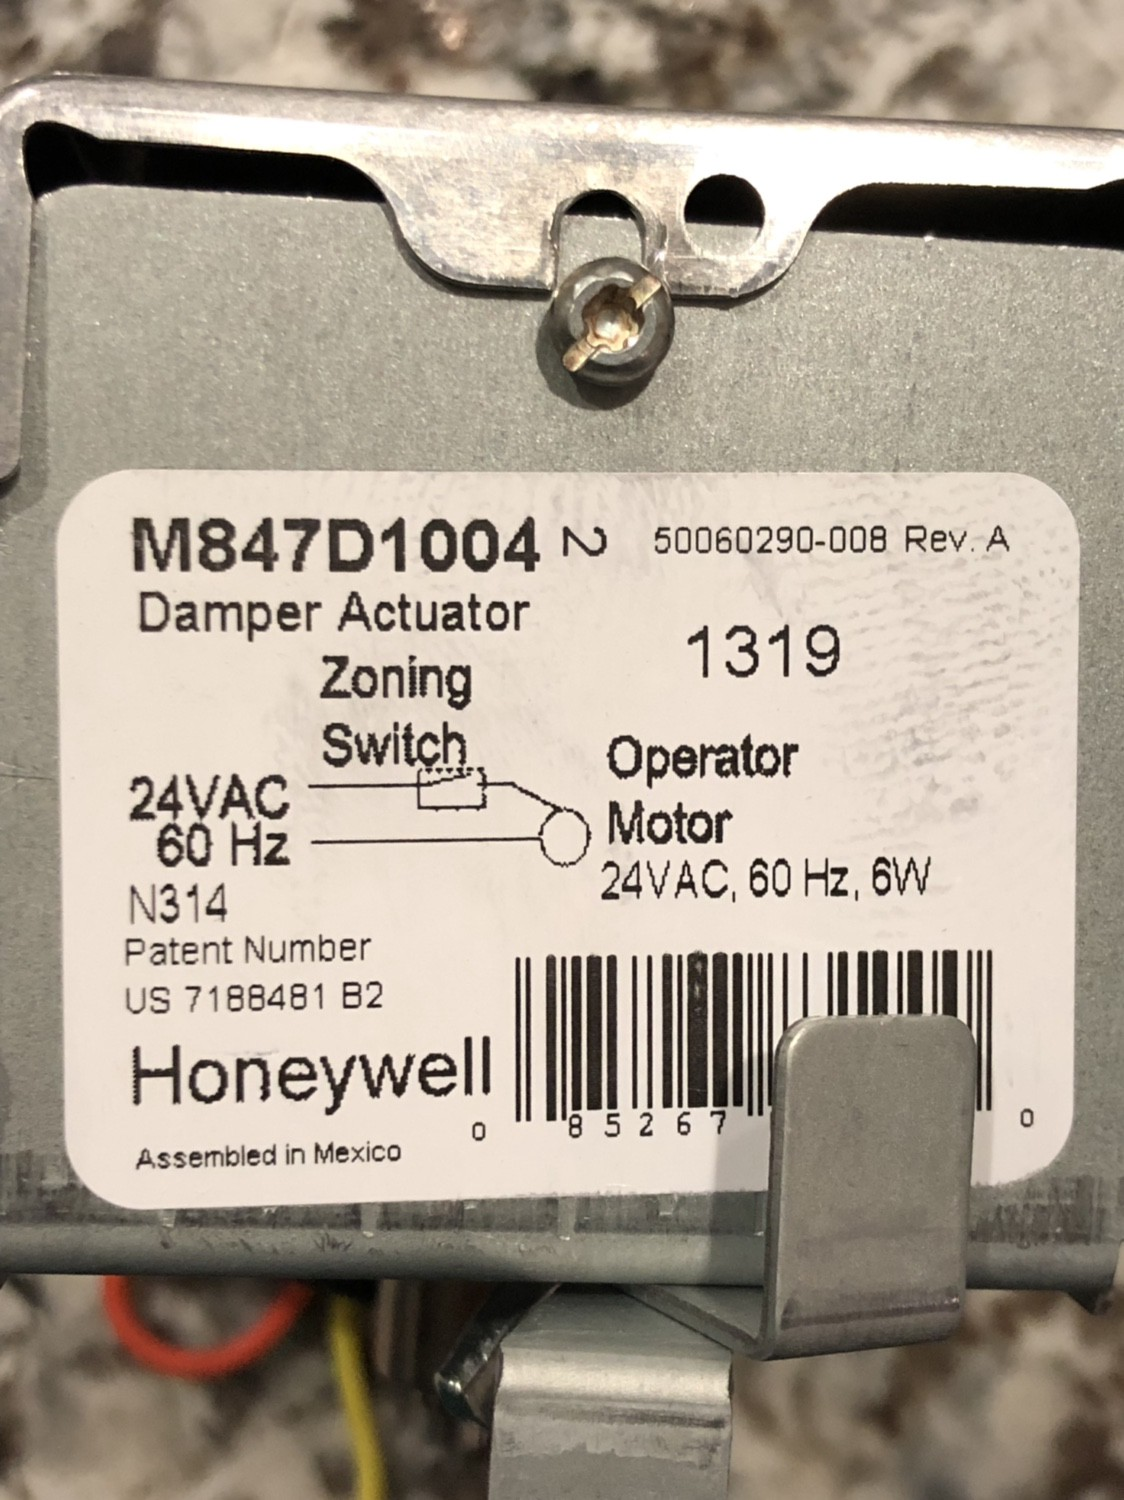 How To Swap Out An Hvac Damper Actuator Yourself  U2014 Honeywell M847d